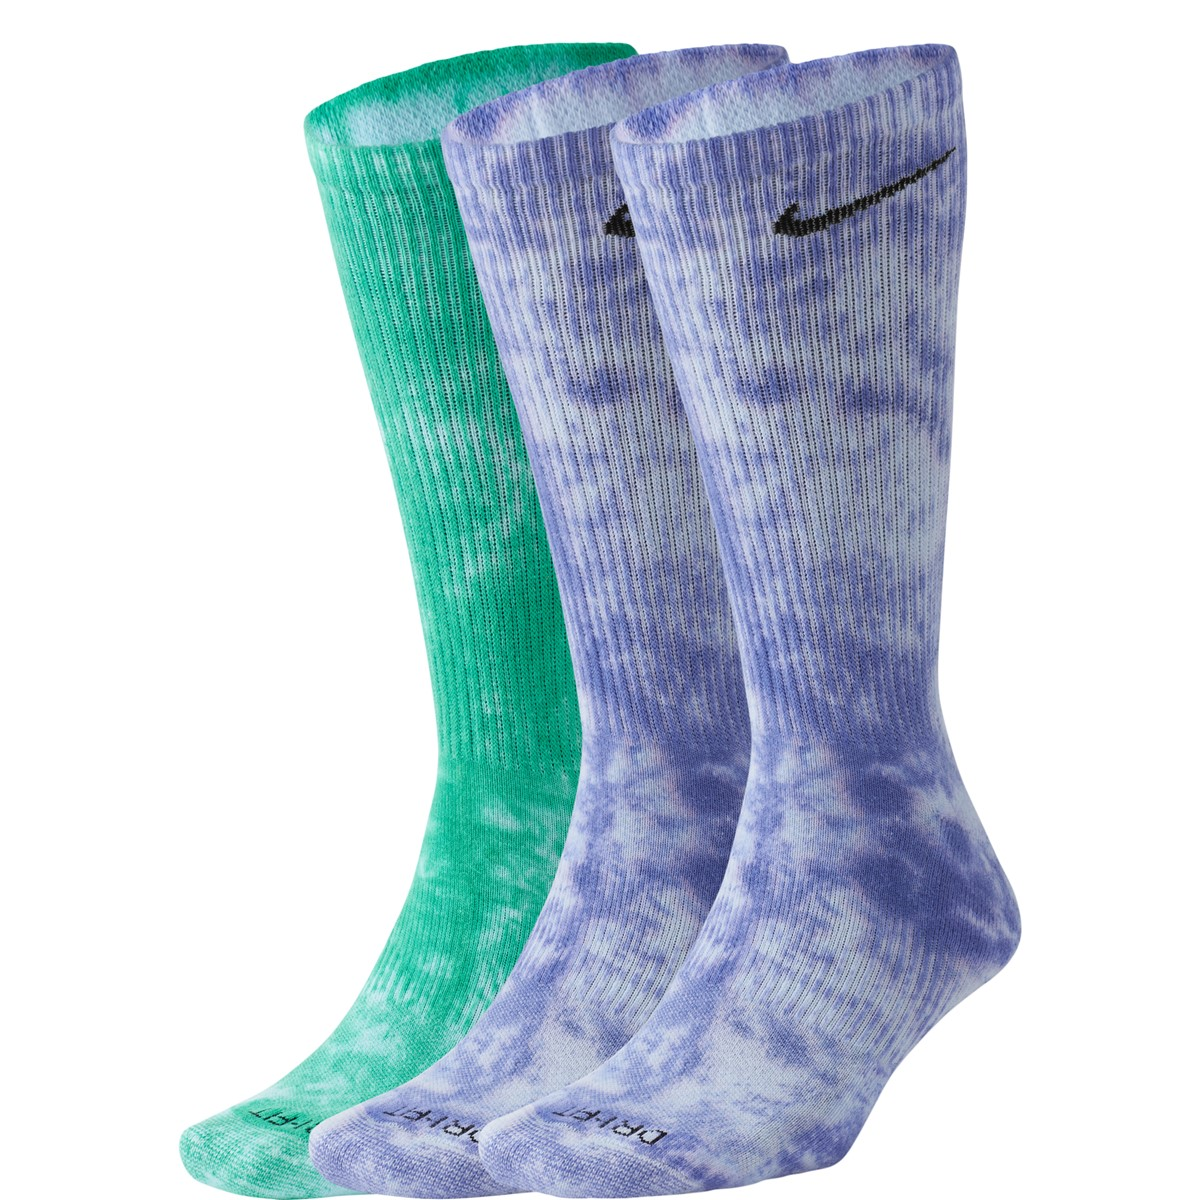 Two Pack Everyday Plus Cushion Crew Socks in Washed Purple/Turquoise